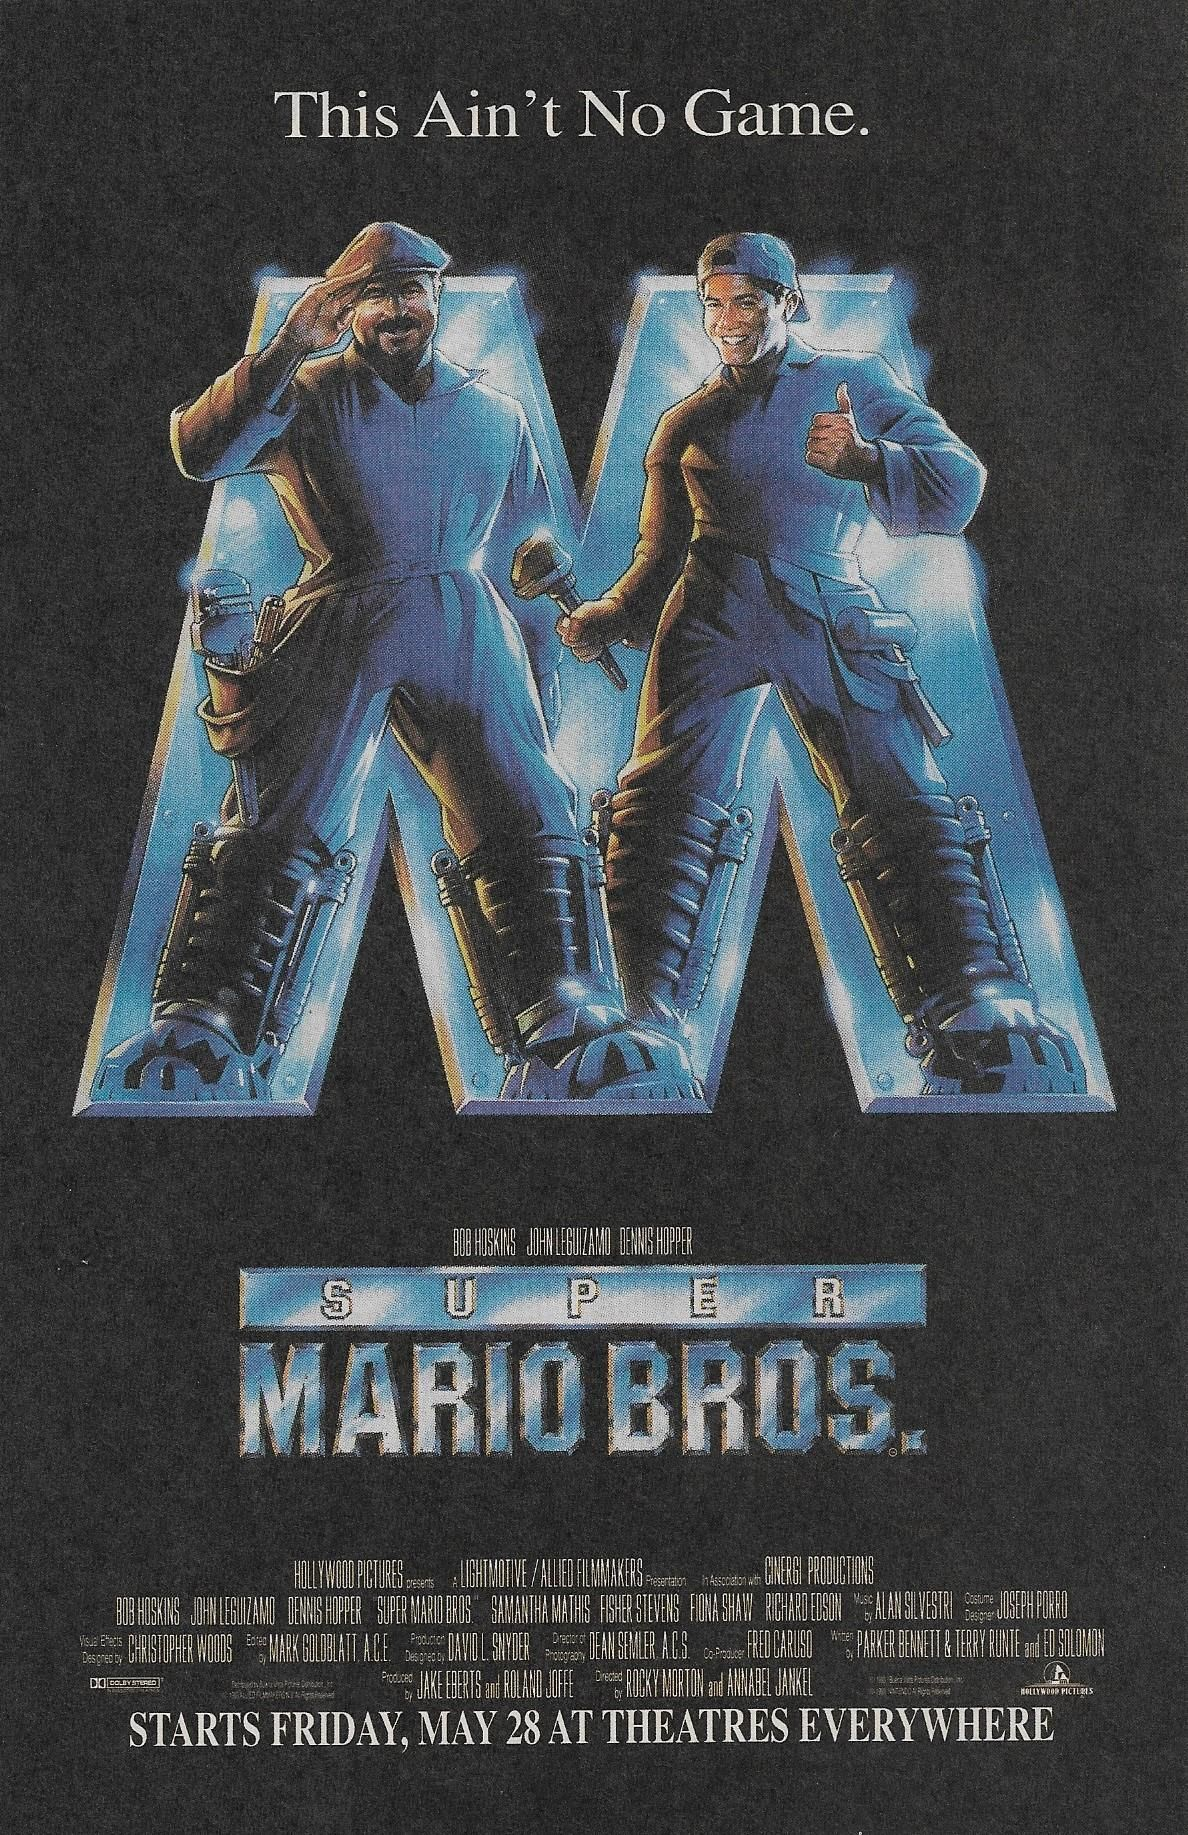 I found this Super Mario Bros. movie advertisement in one